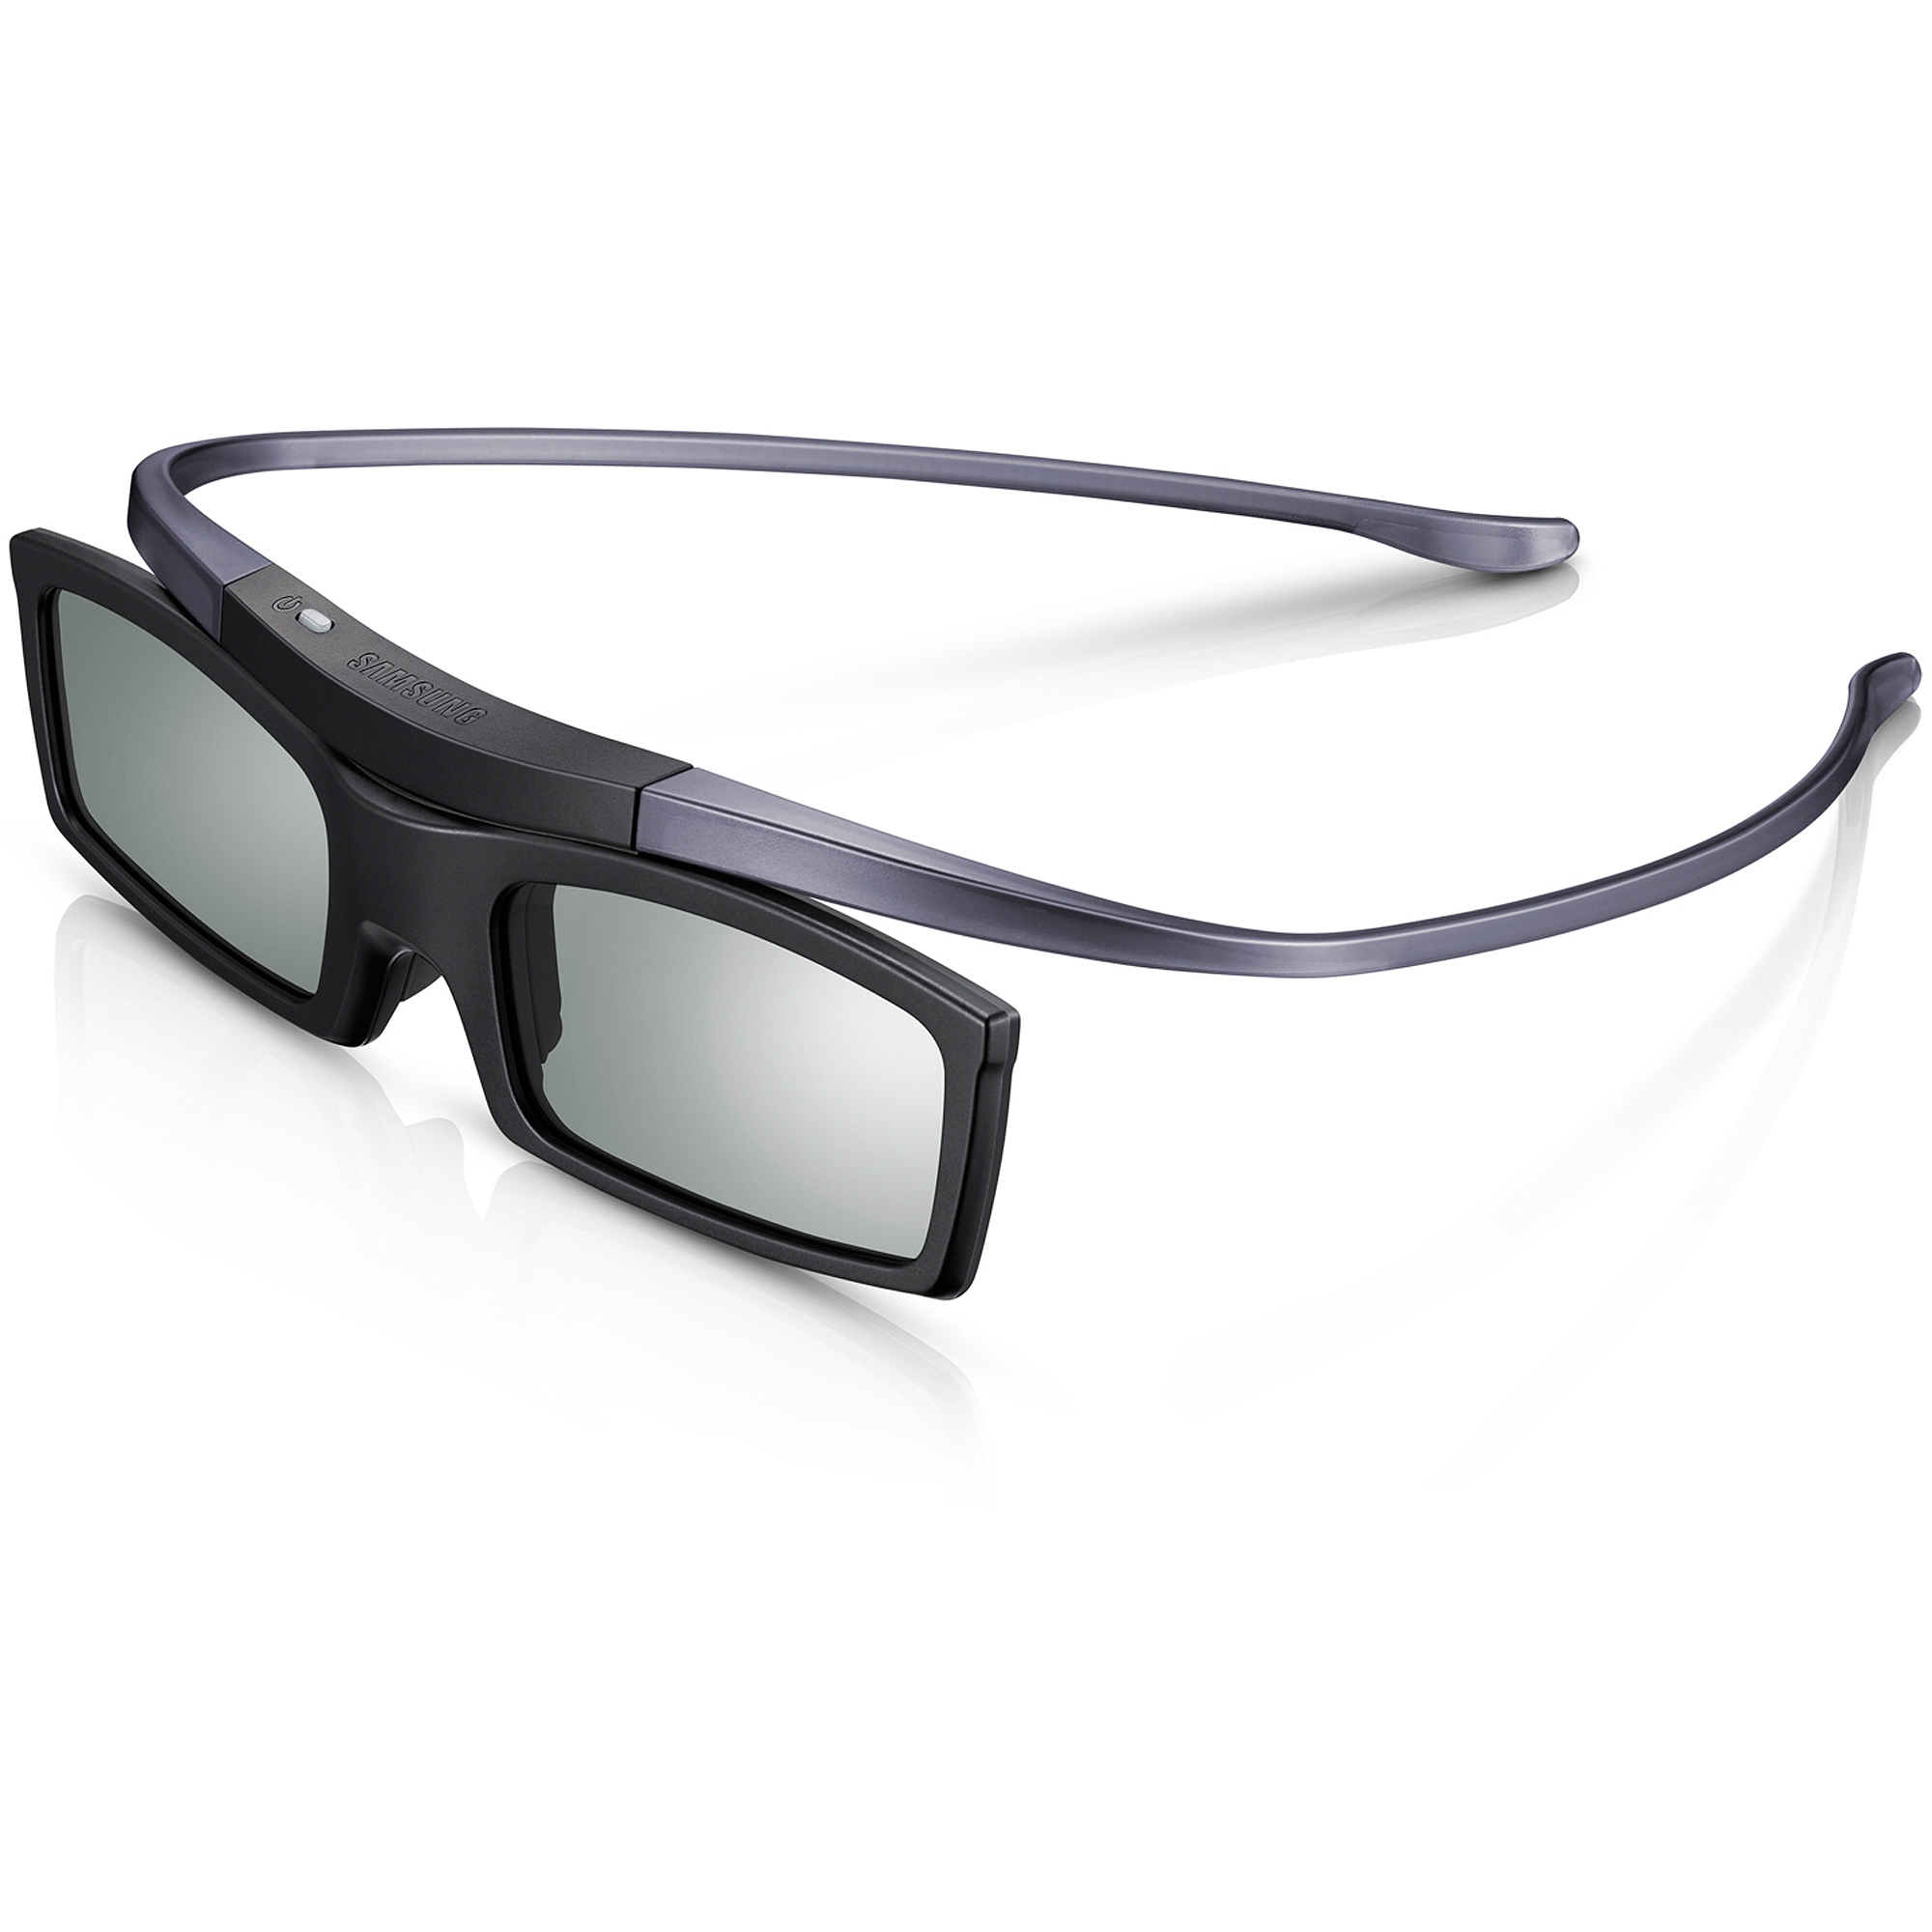 Samsung SSG-5150GB 3D Glasses Battery Operated